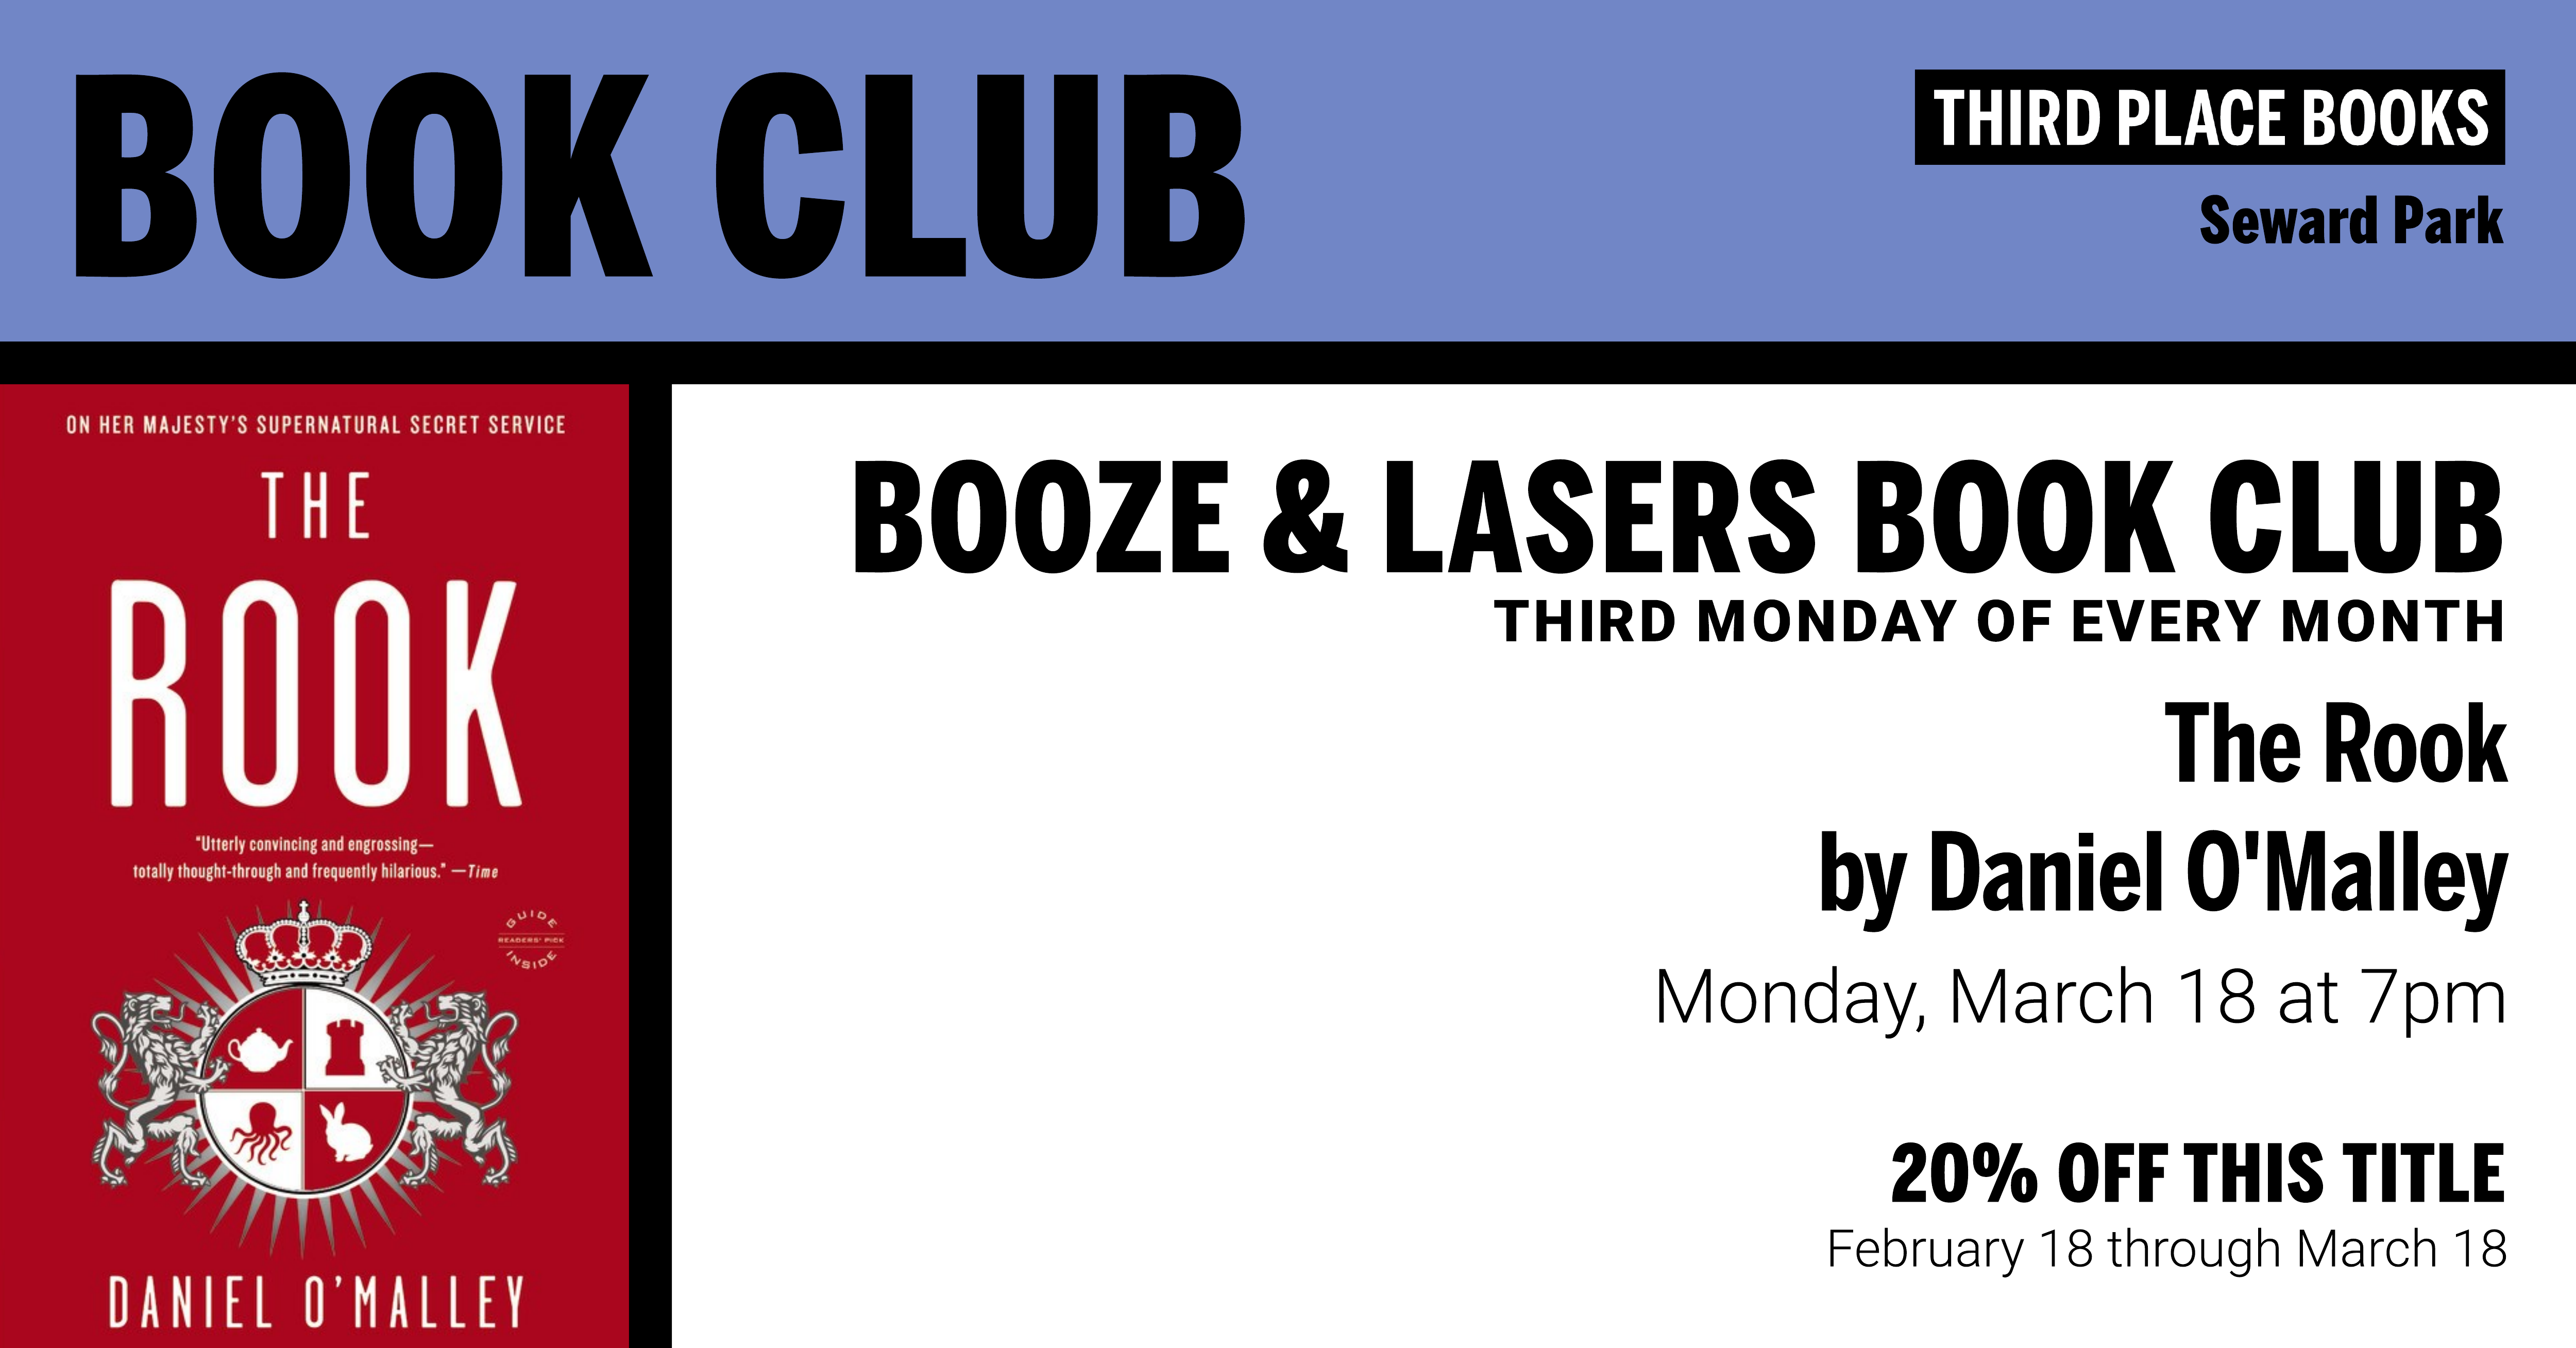 Booze & Lasers Book Club reading The Rook by Daniel O'Malley on Monday, March 18 at 7pm